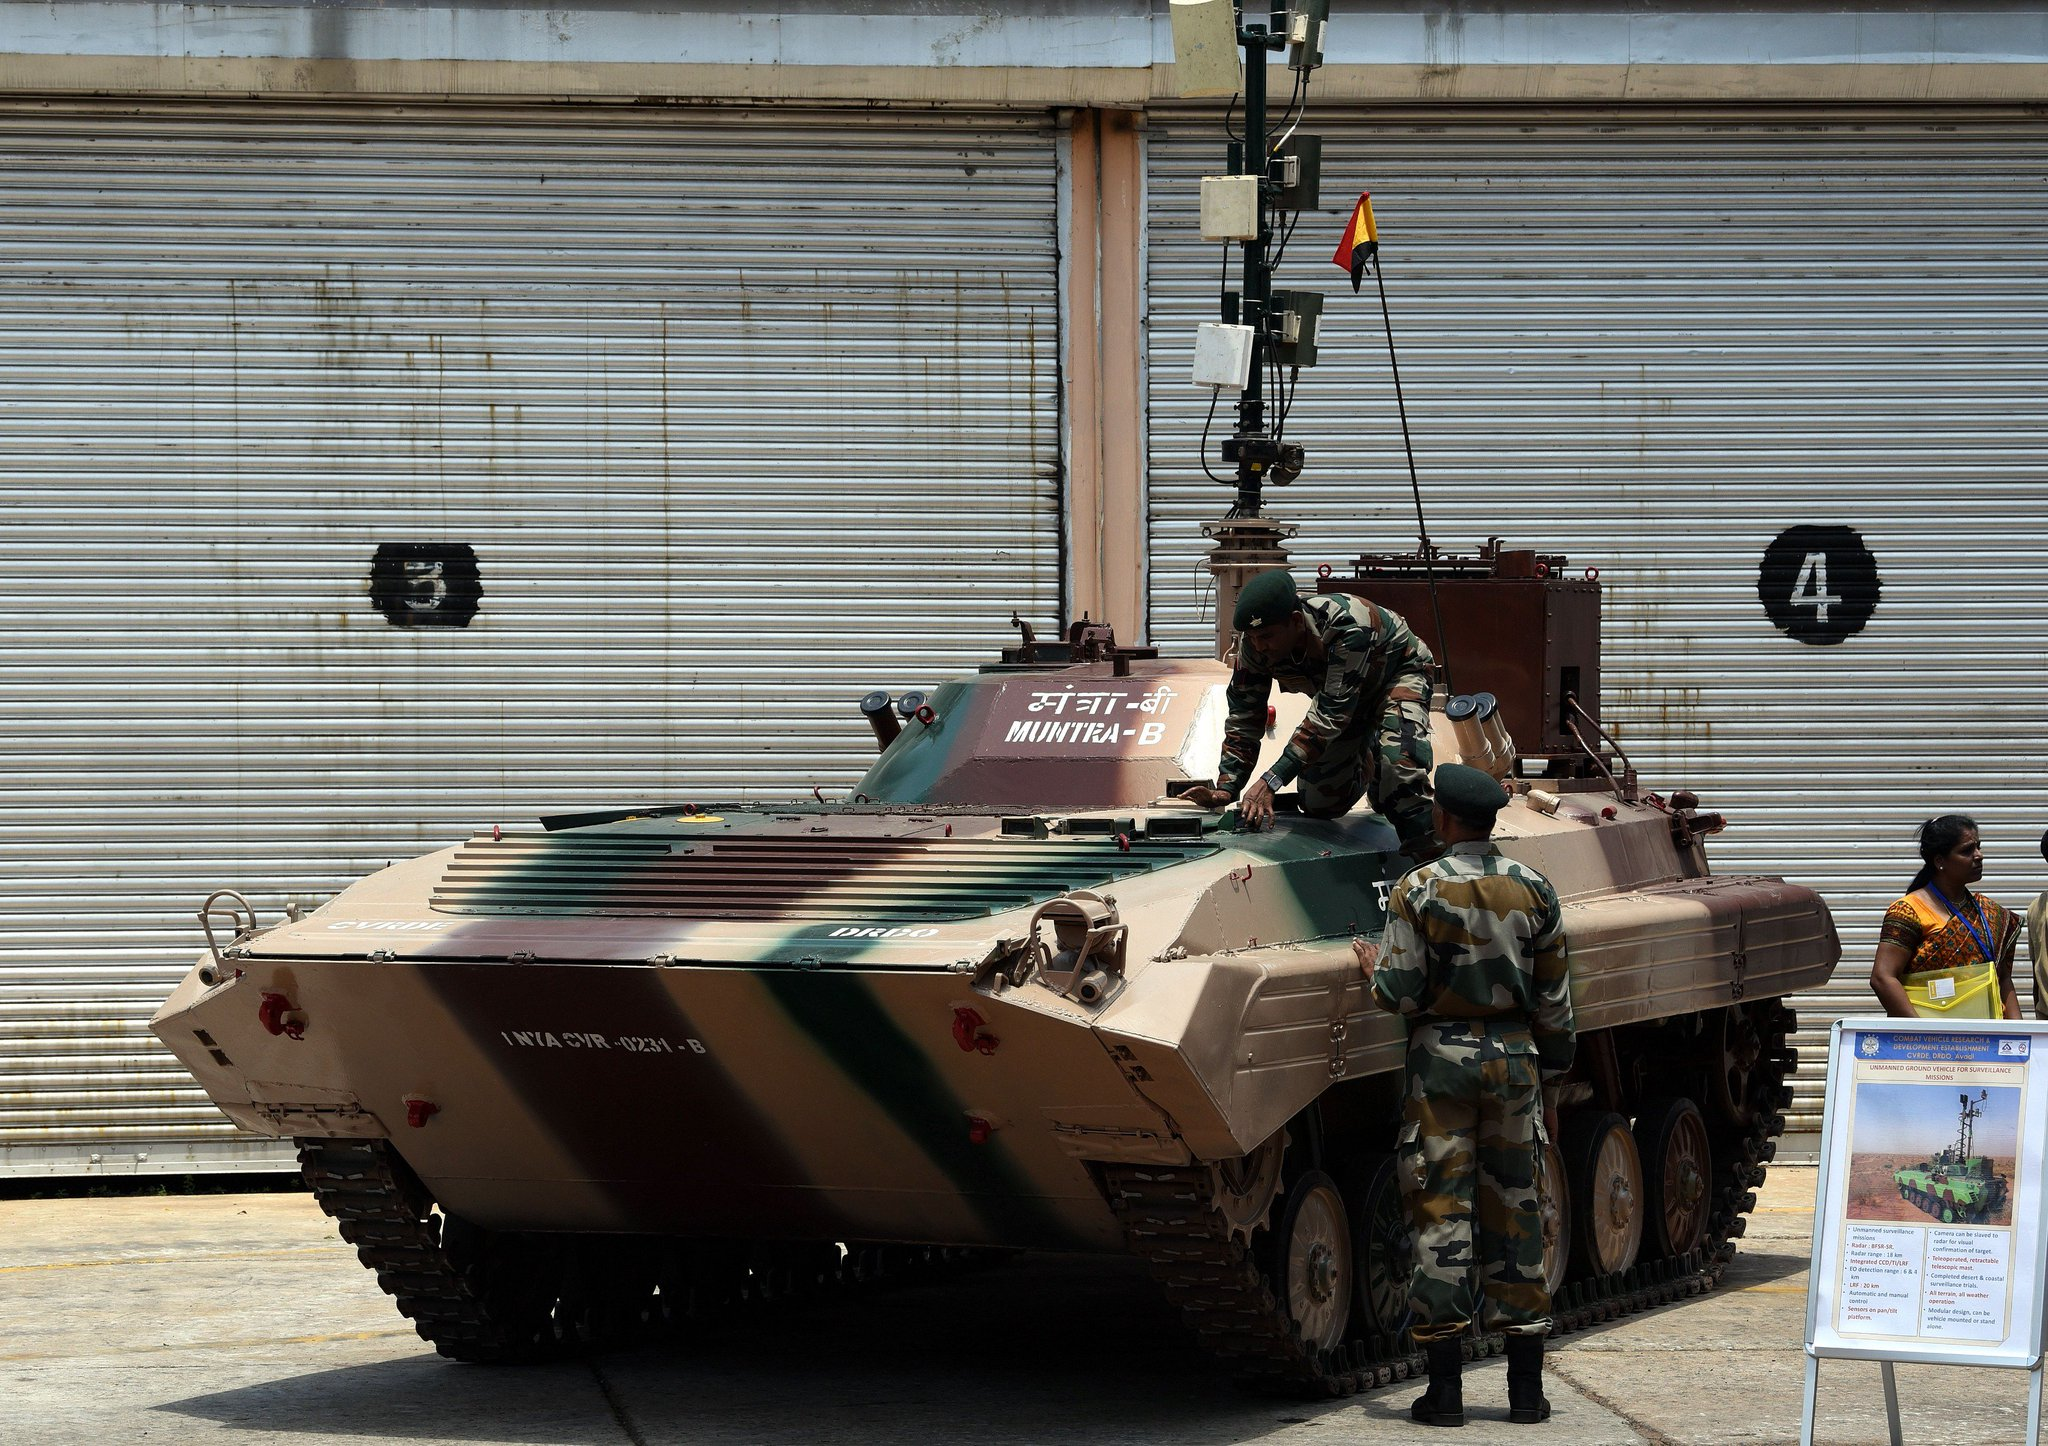 India working on unmanned tanks, vessels, robotic weaponry for future wars https://t.co/jBkeYplmhR https://t.co/femPTIHvL8